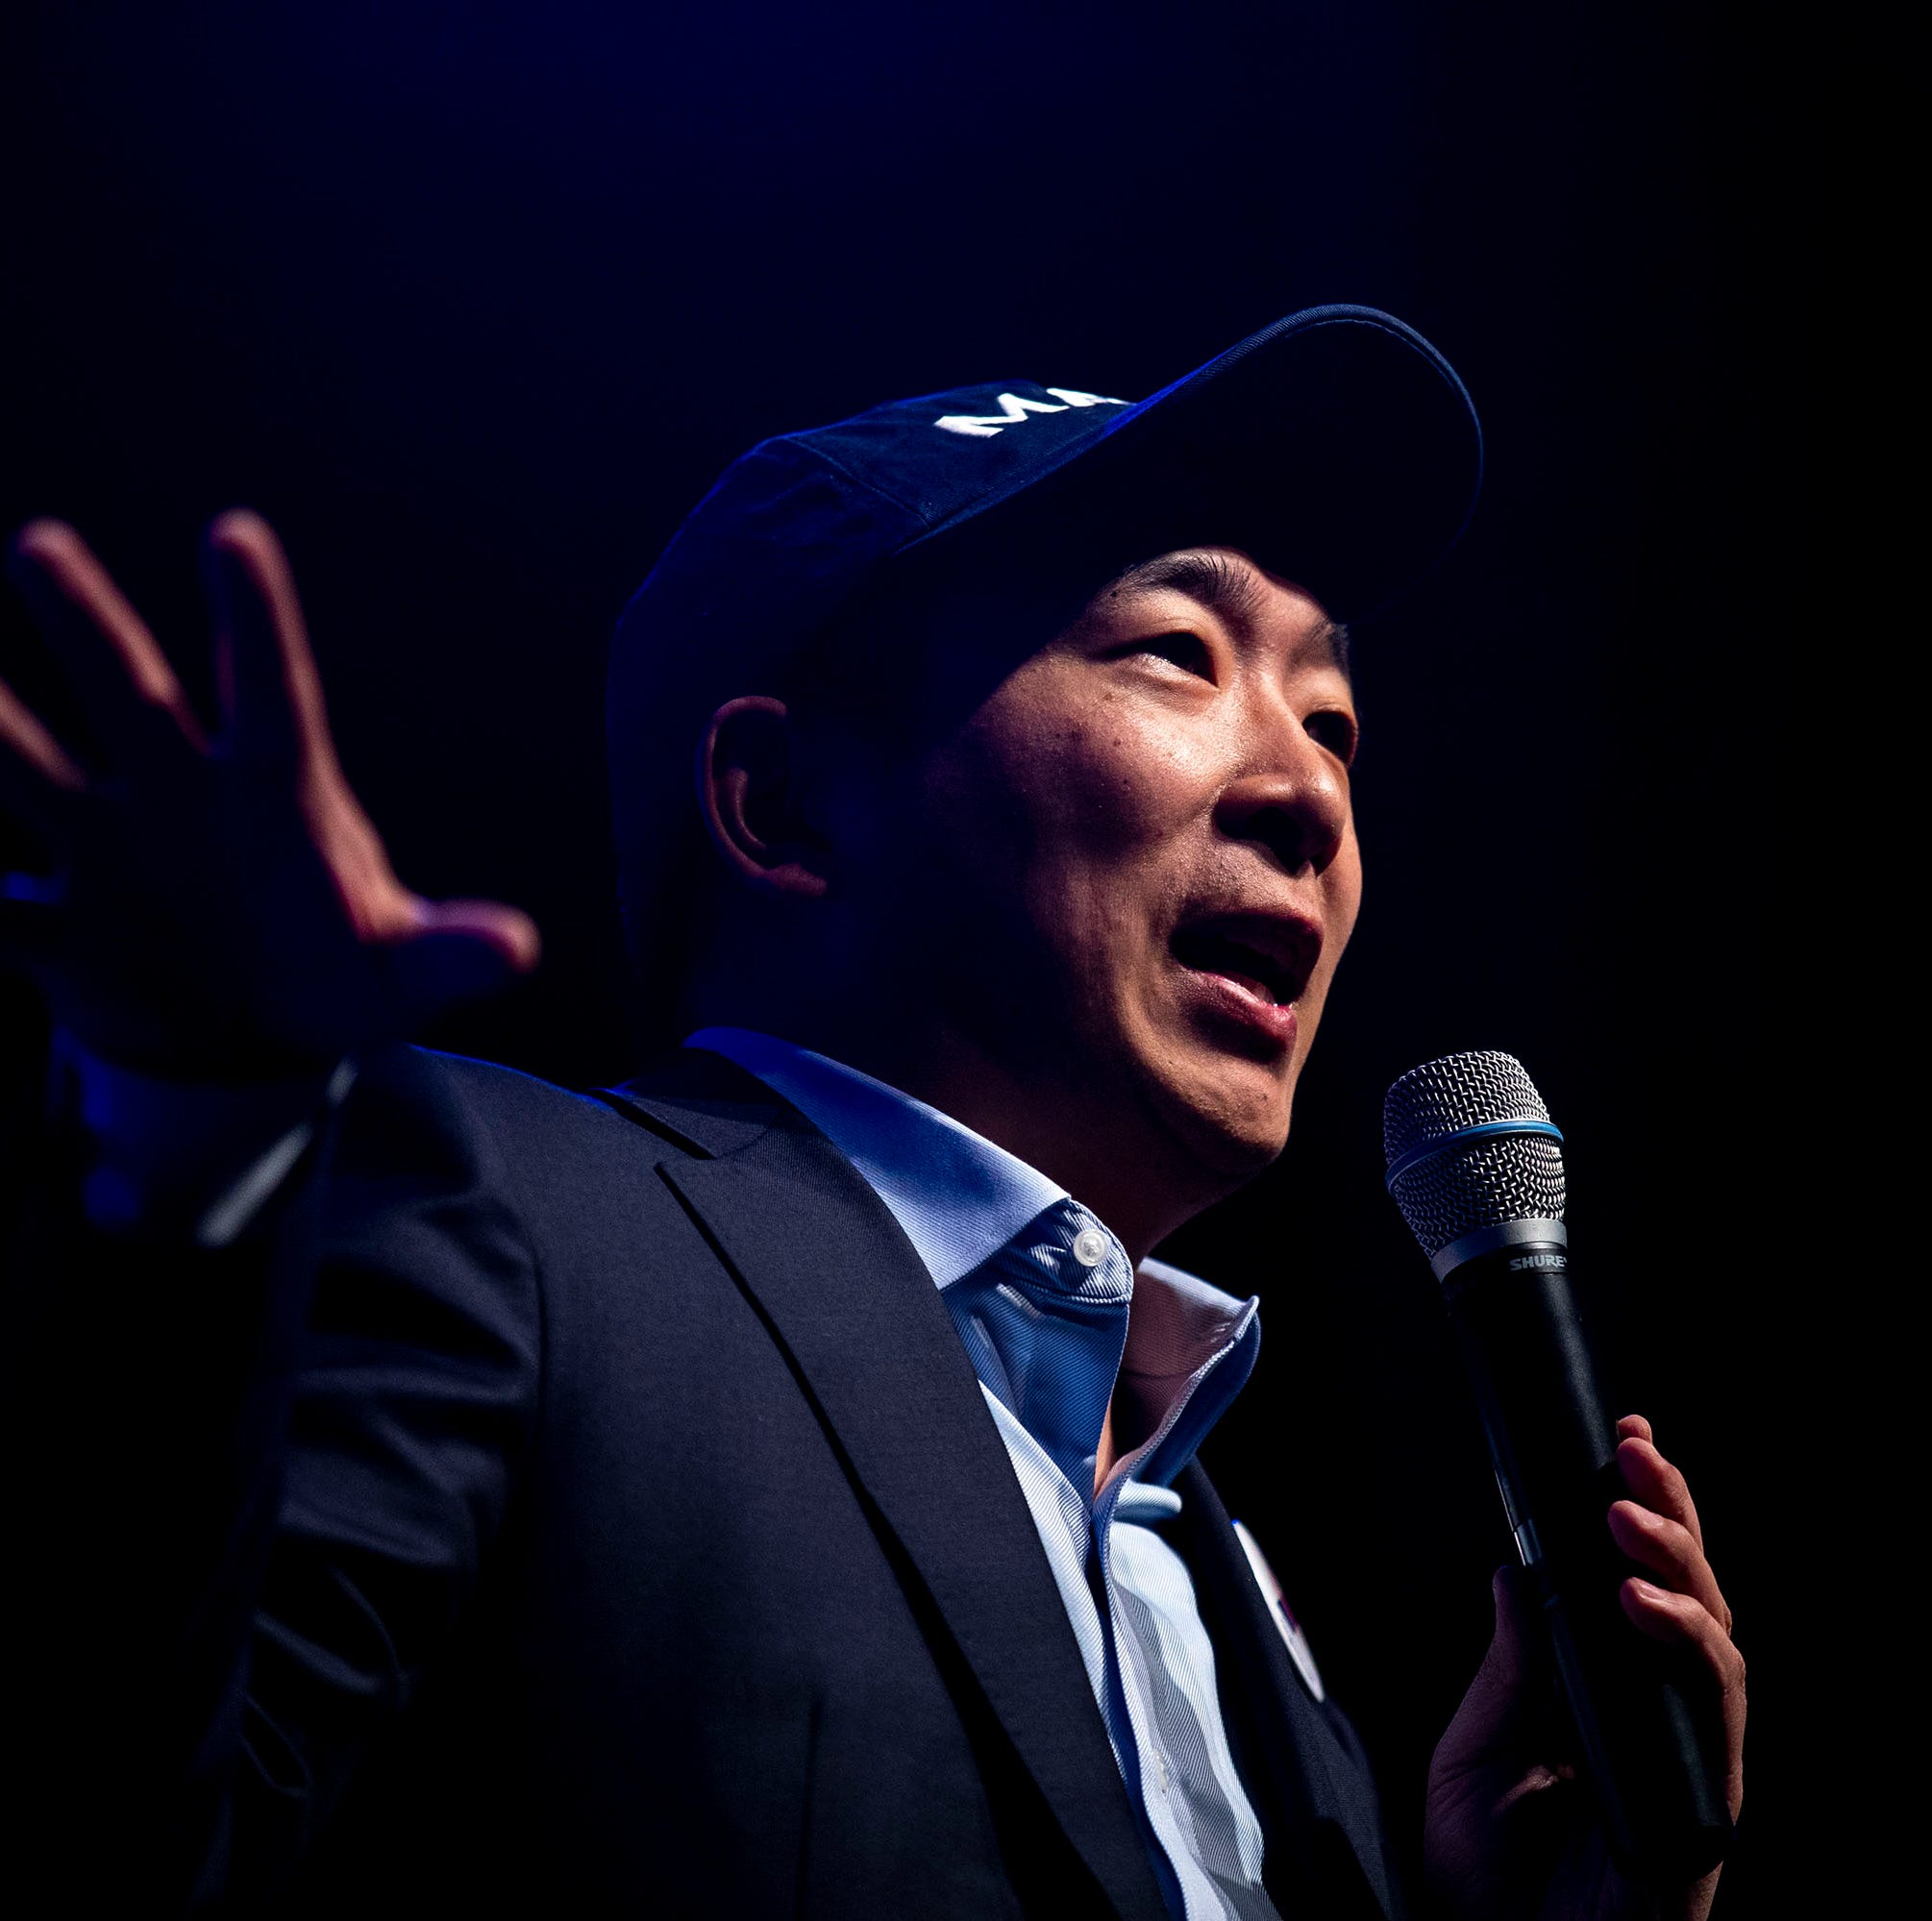 2020 candidate Andrew Yang wants to give an Iowan $12,000 over the next year to demonstrate the value of his policy plans